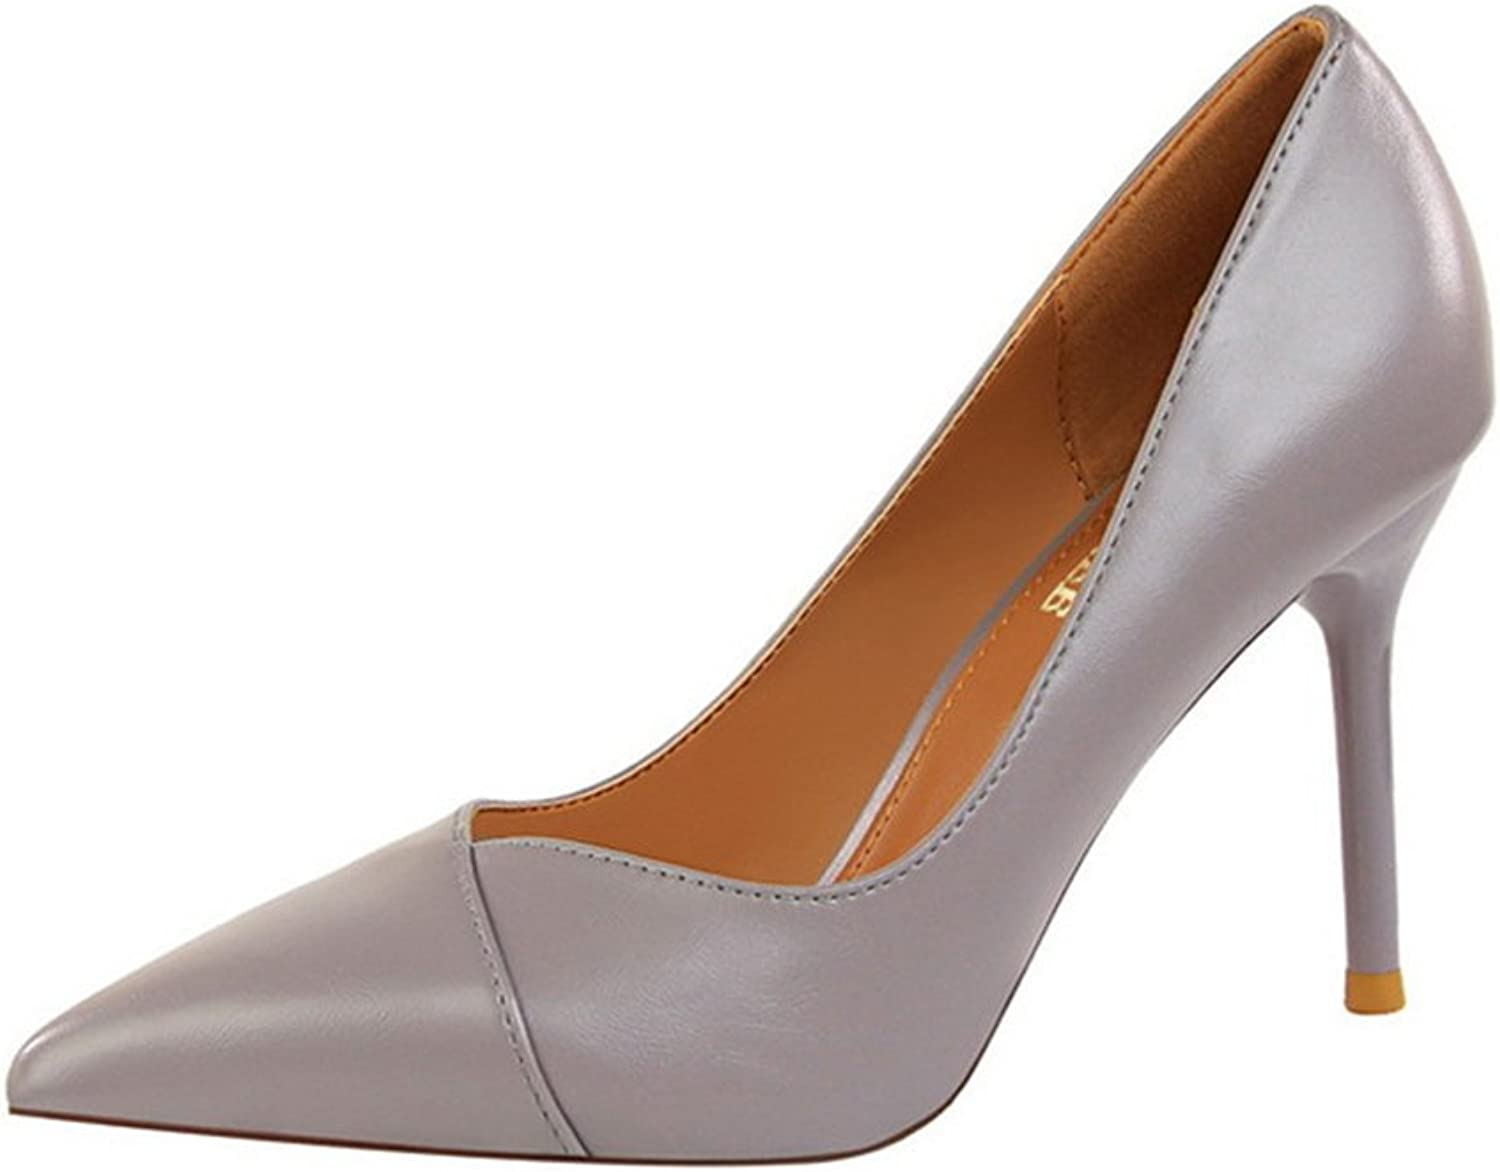 Owen Moll Women Pumps, Concise Office Pointed Toe Shallow High Heels Sandal shoes